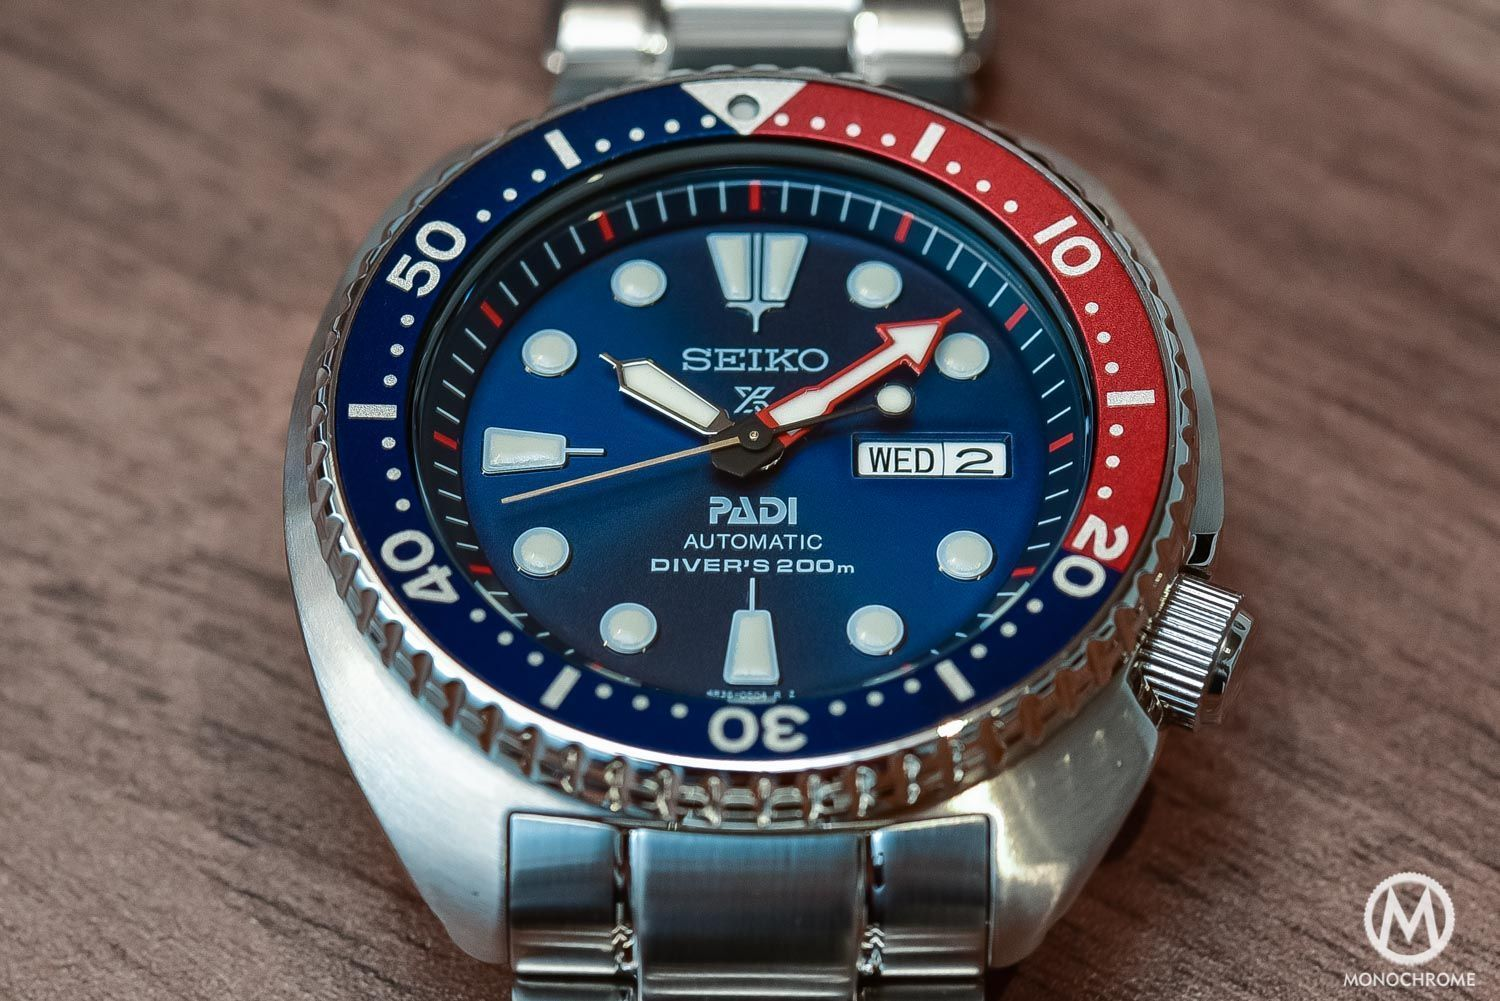 Hands-On Review - Seiko Prospex SRPA21 PADI Turtle - A nice, colorful, affordable dive watch for summer (live pics, specs & price #monochromewatches Hands-On Review - Seiko Prospex SRPA21 PADI Turtle - A nice, colorful, affordable dive watch for summer (live pics, specs & price) - Monochrome Watches #monochromewatches Hands-On Review - Seiko Prospex SRPA21 PADI Turtle - A nice, colorful, affordable dive watch for summer (live pics, specs & price #monochromewatches Hands-On Review - Seiko Prospex #monochromewatches